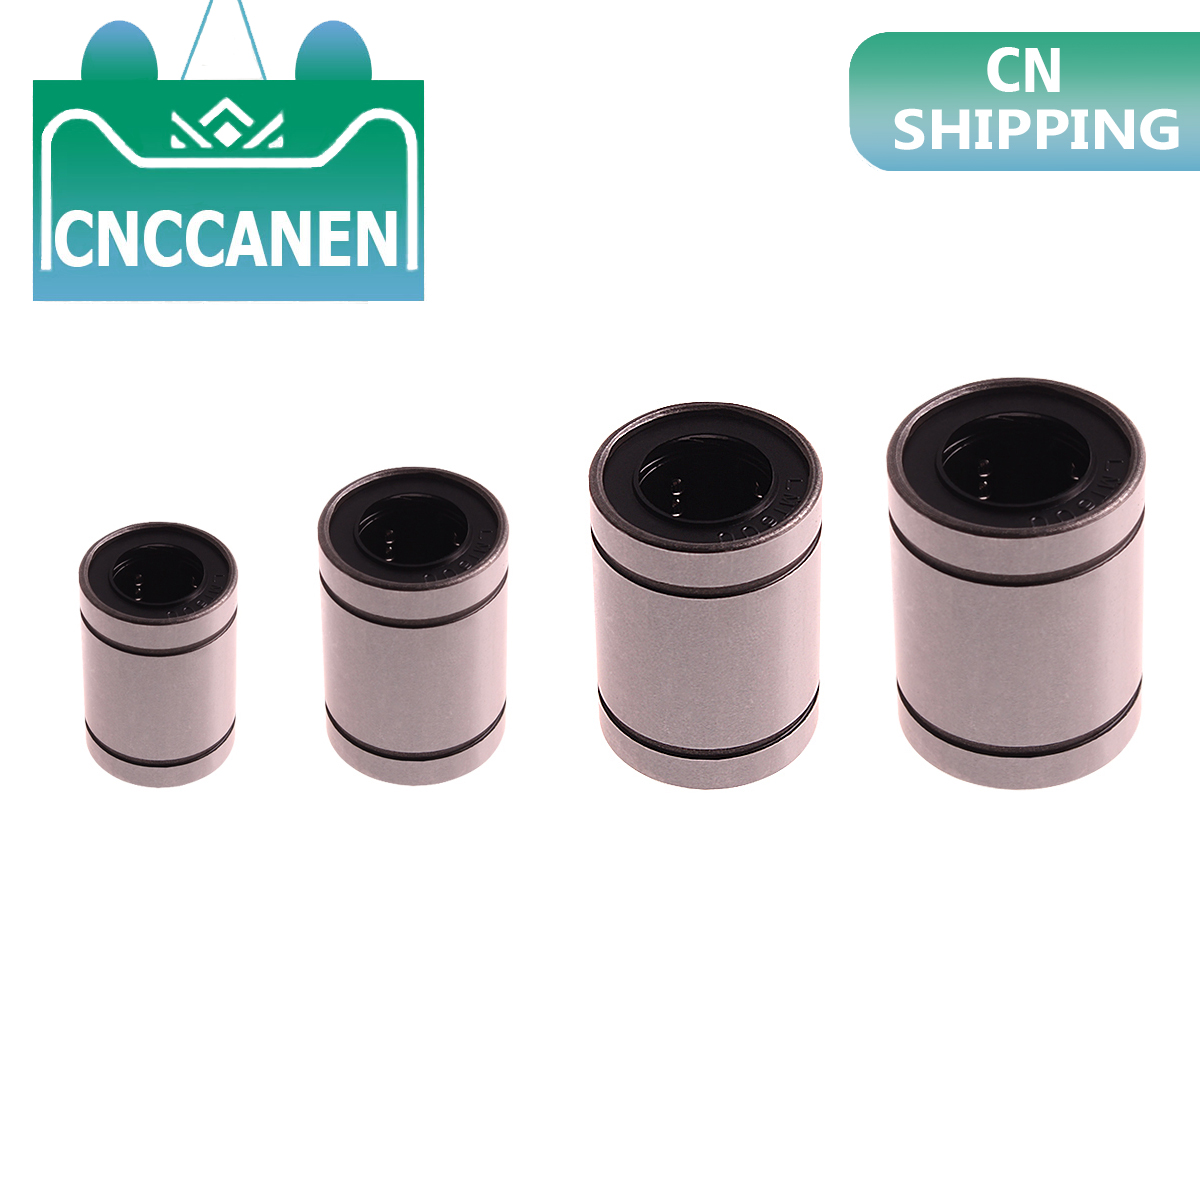 1PC LM8UU LM10UU LM16UU LM6UU LM12UU LM3UU Linear Bushing 8mm CNC Linear Bearings For Rods Liner Rail Linear Shaft Parts